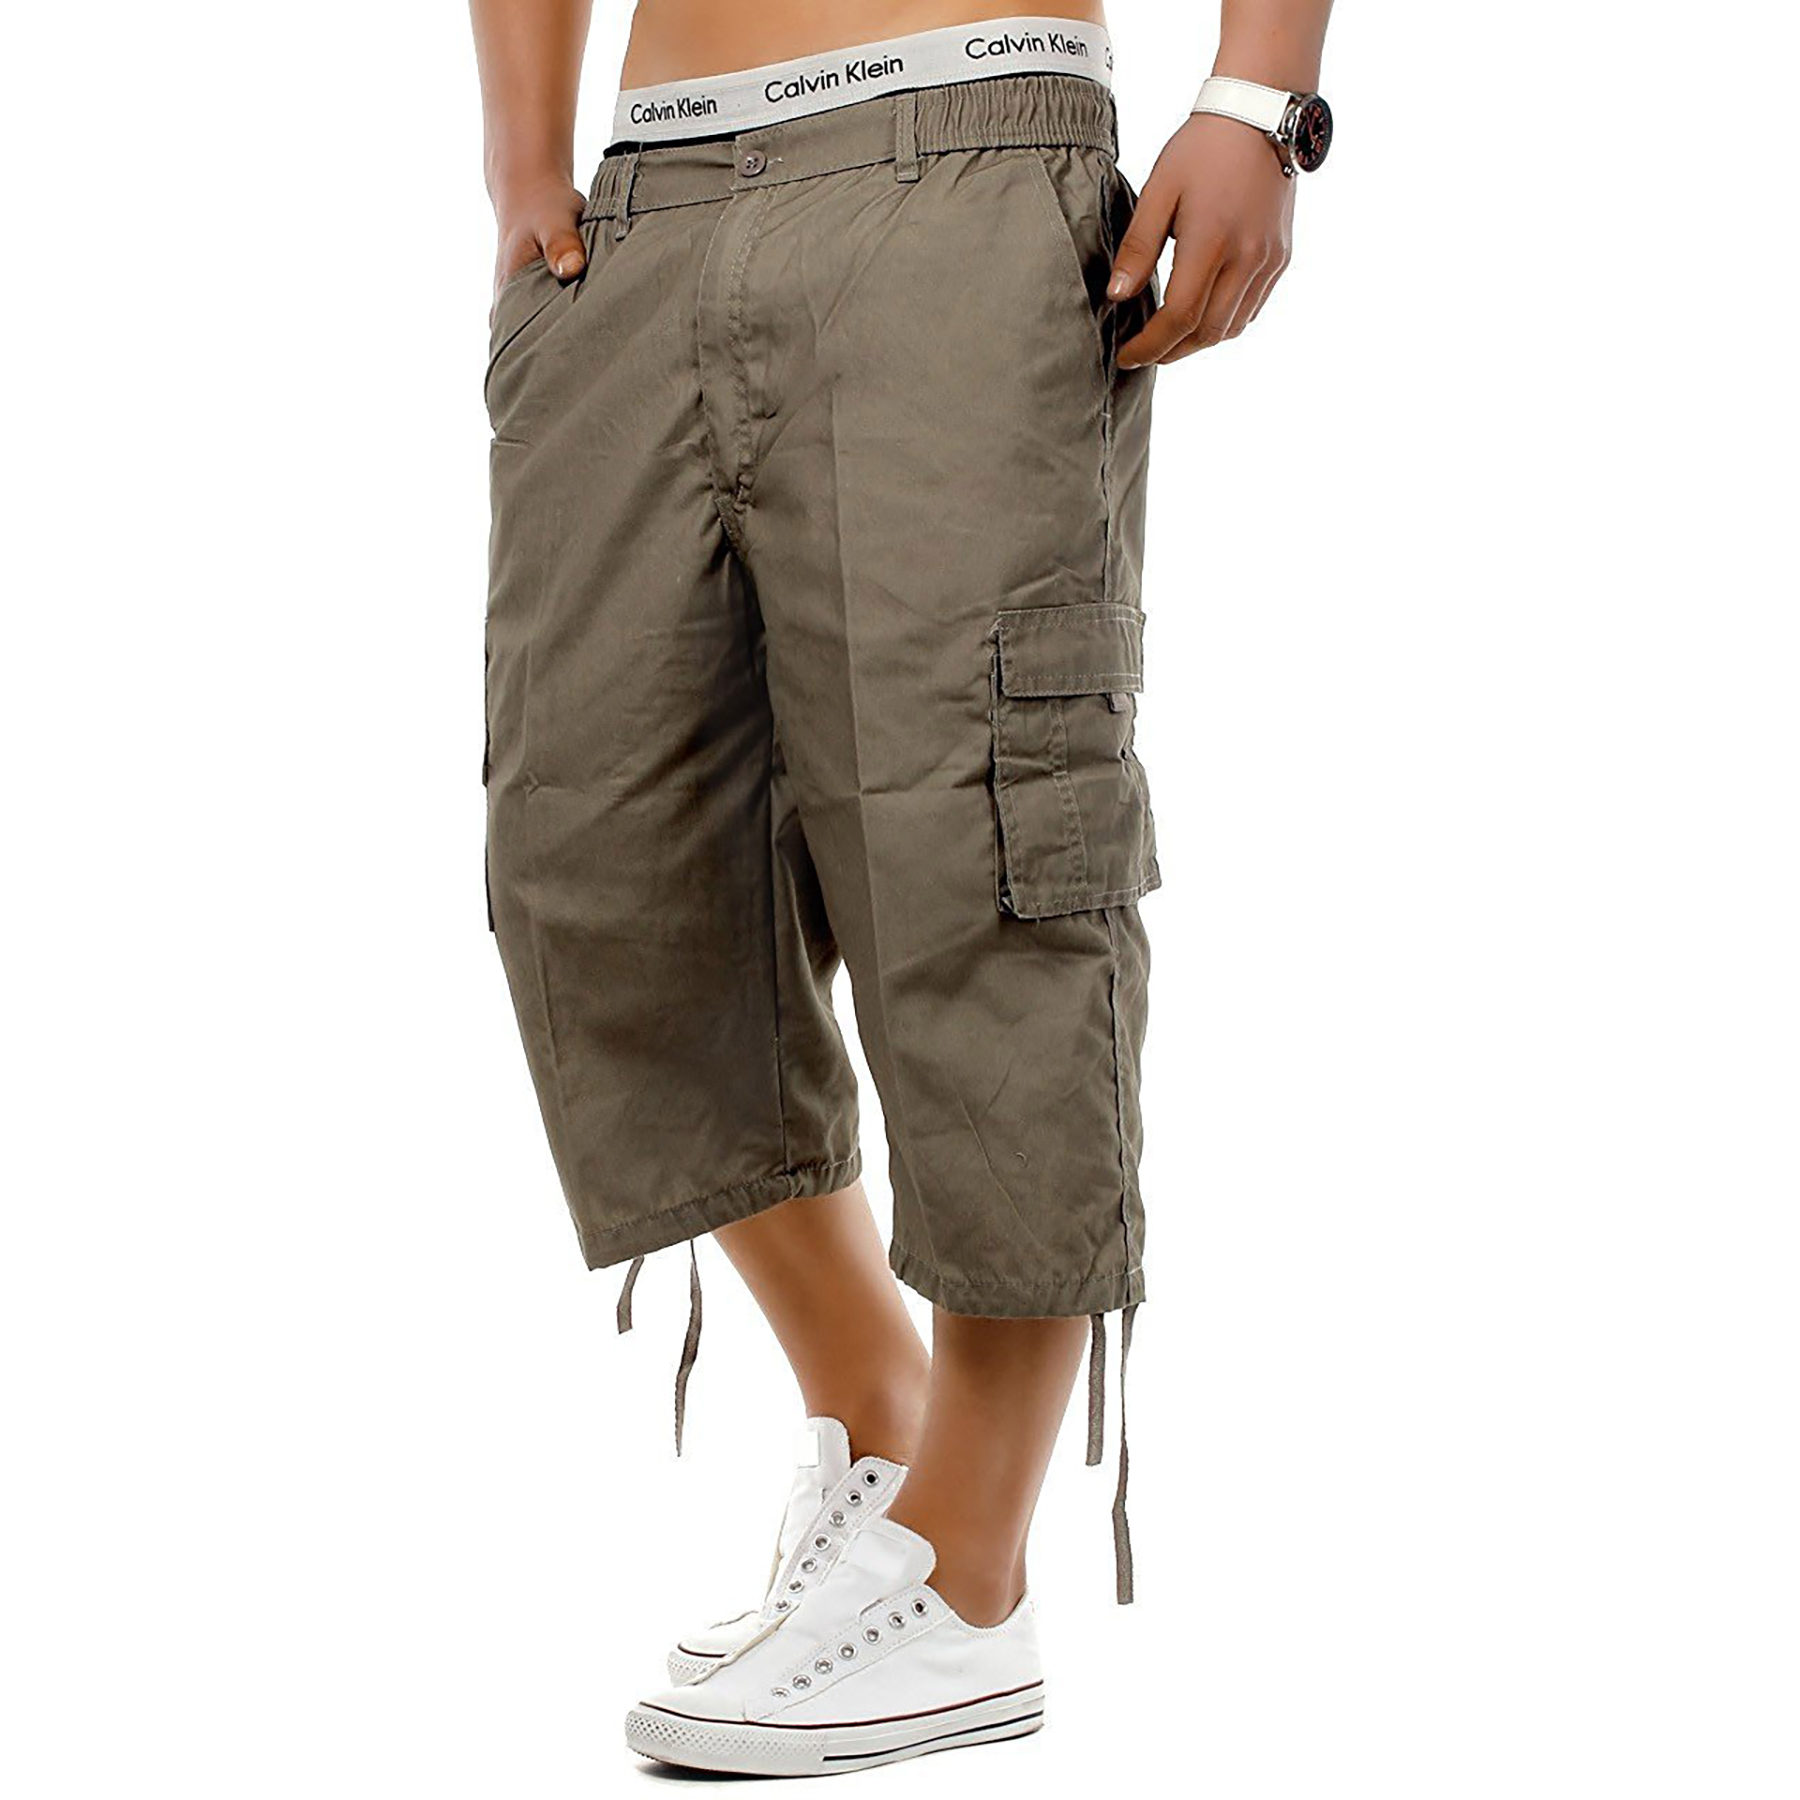 Mens-3-4-Long-Length-Shorts-Elasticated-Waist-Cargo-Combat-Three-Quarter-Shorts thumbnail 11